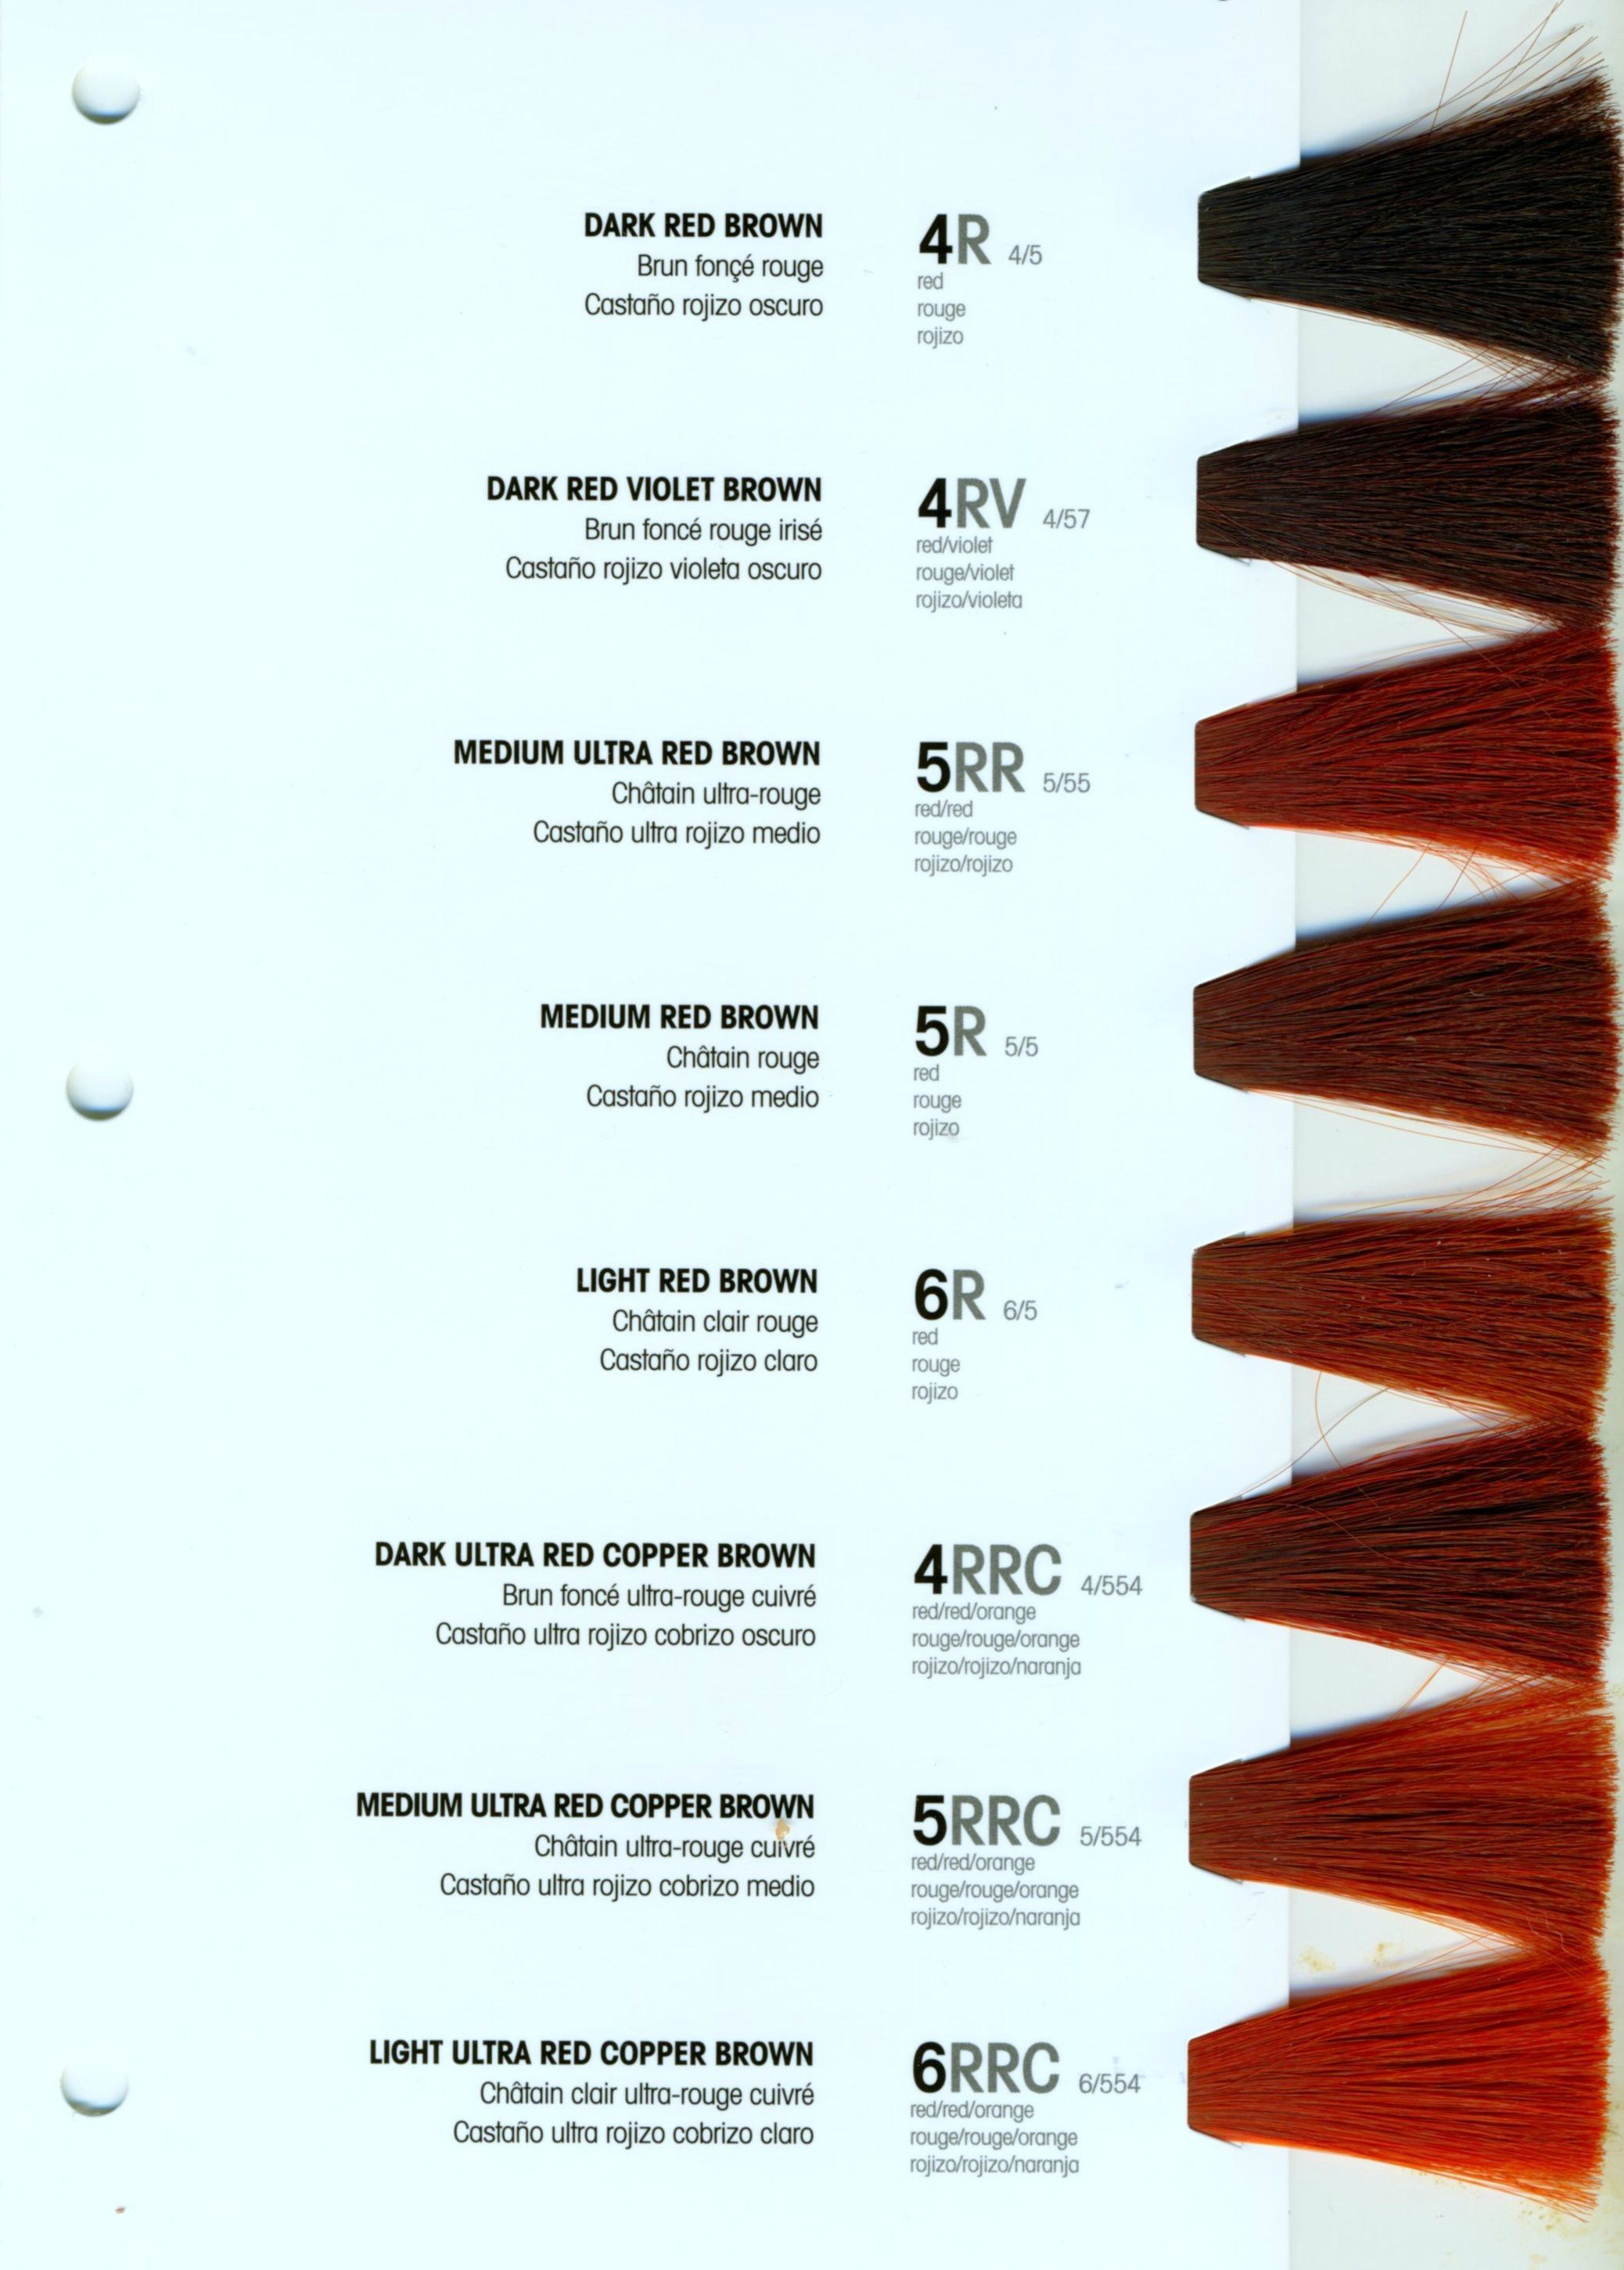 New Lanza Color Swatch Chart Album On Imgur Hair Color Chart Ion Hair Colors Ion Hair Color Chart